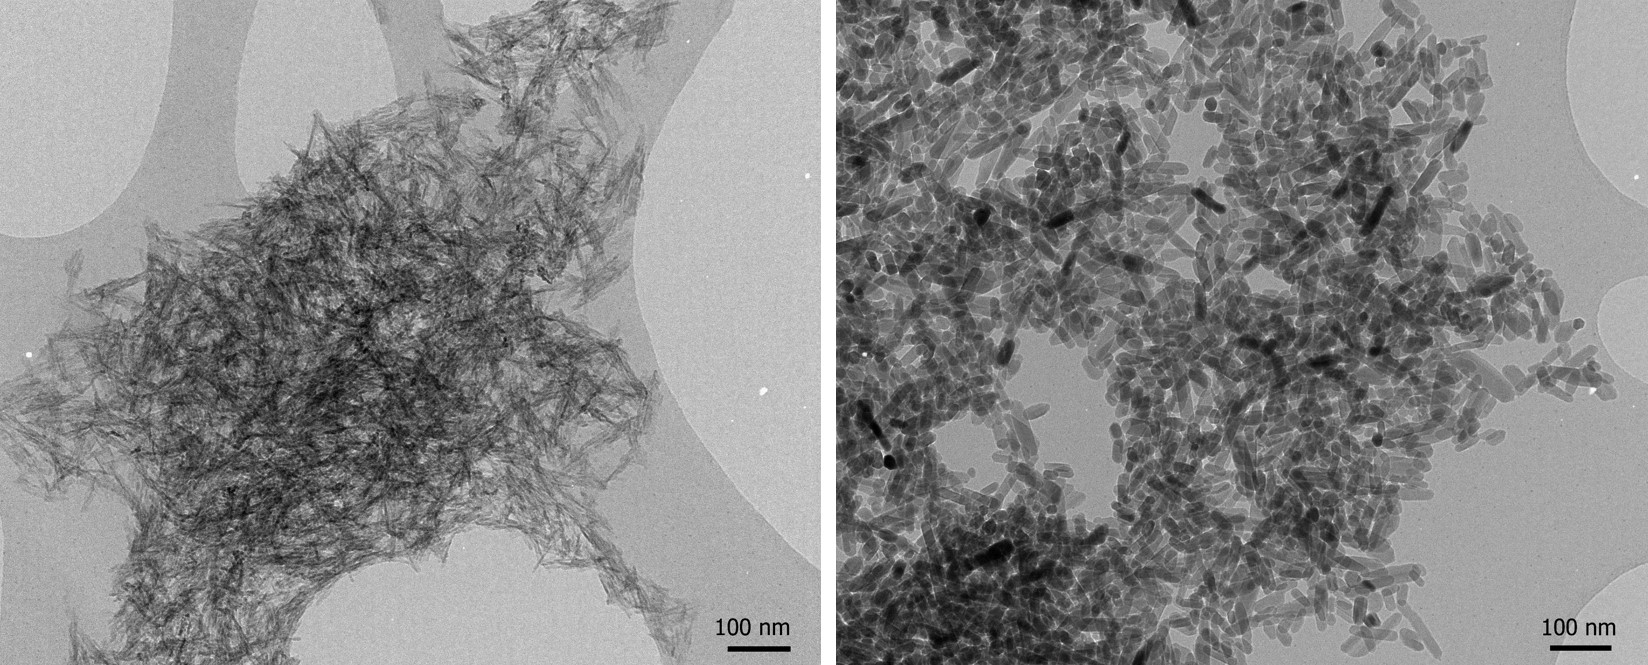 Calcium phosphate wet precipitate before (left) and after (right) autoclave treatment (Karin Müller, CAIC, doi.org/10.1016/j.biomaterials.2013.10.041).